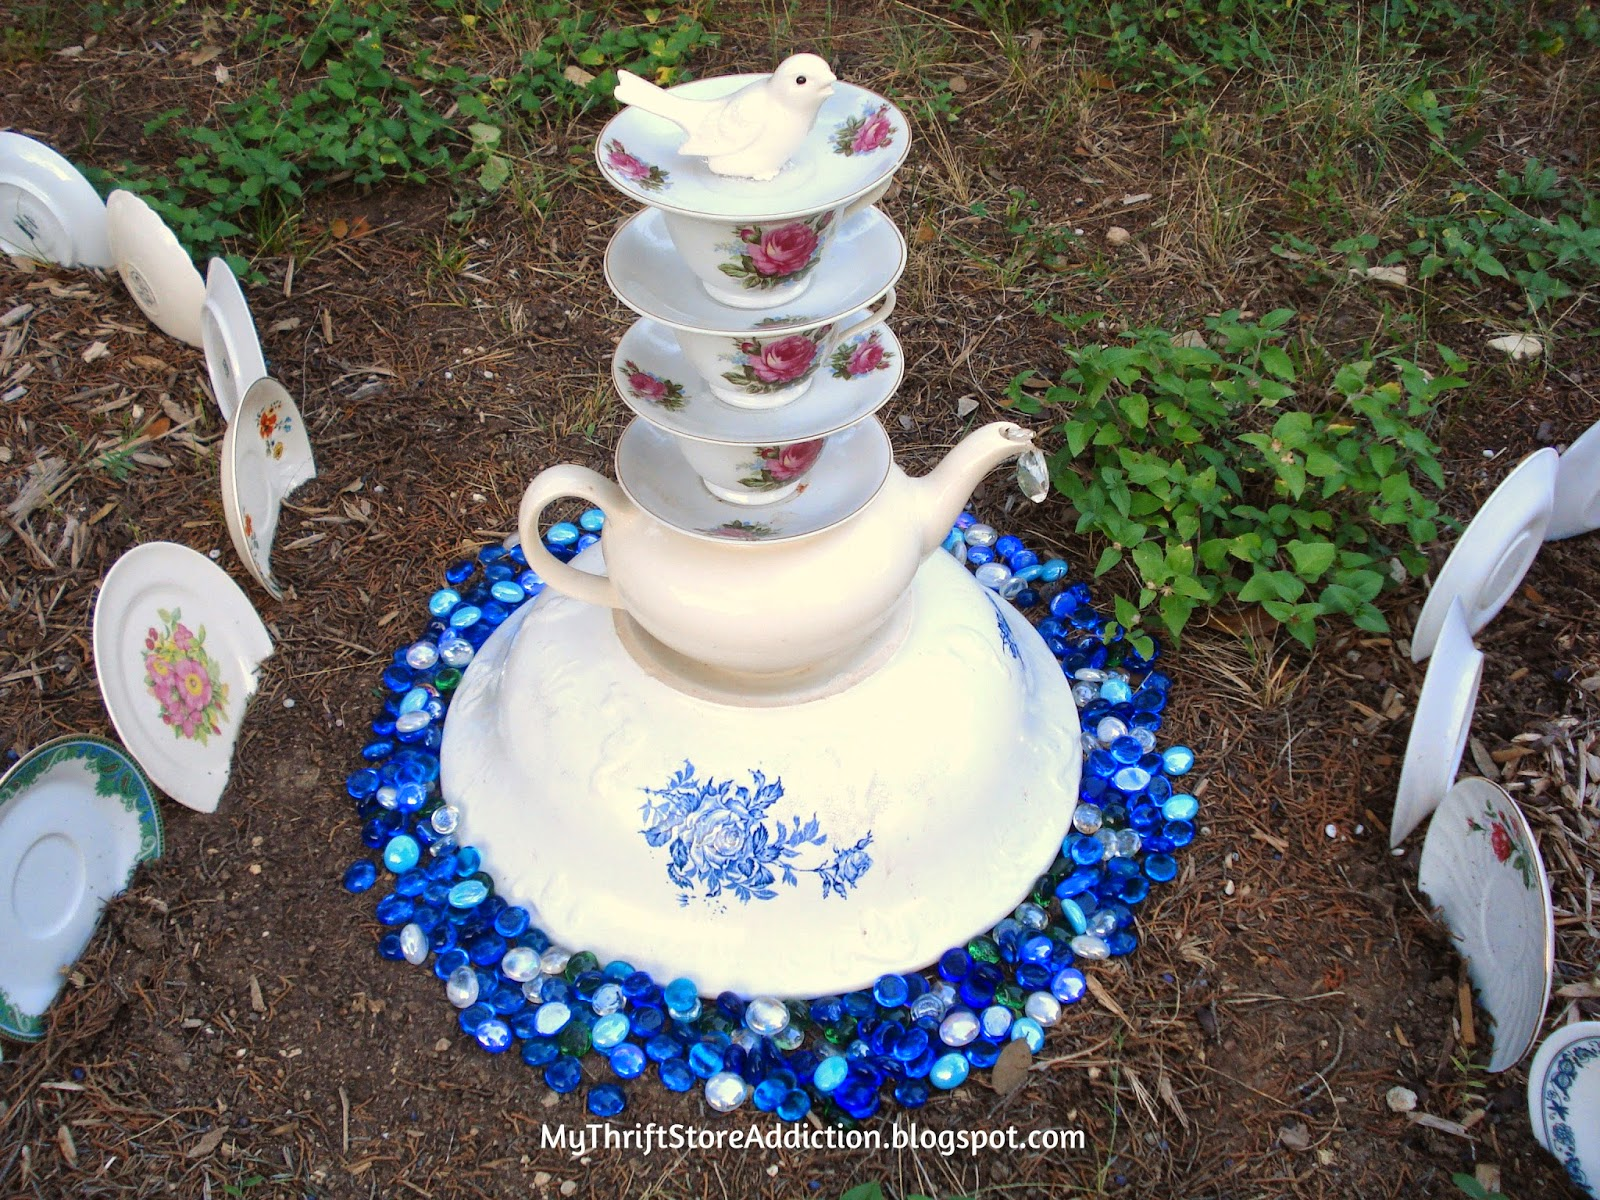 Thrift Store Yard: Teacup Tower mythriftstoreaddiction.blogspot.com Create a teacup tower with yard sale and thrift store dishes